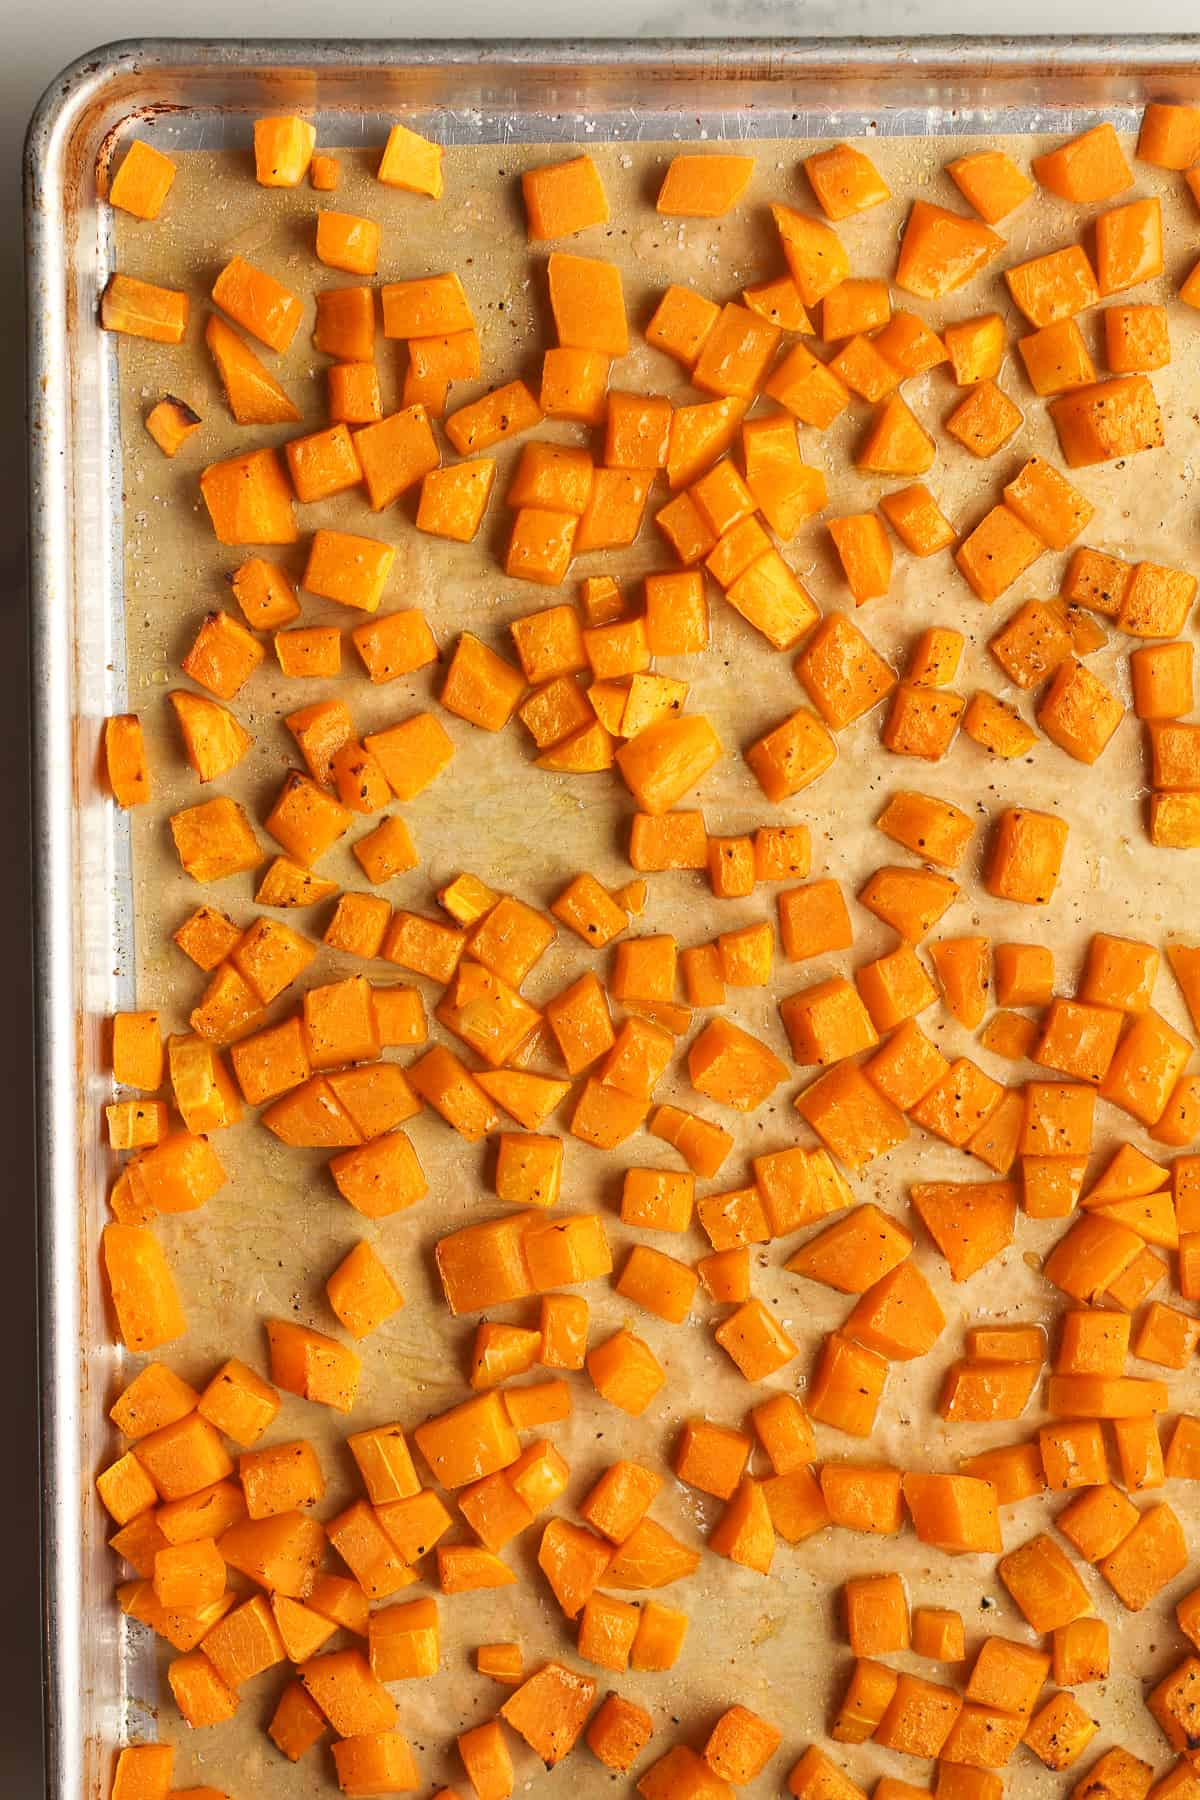 The baked butternut squash, cubed.